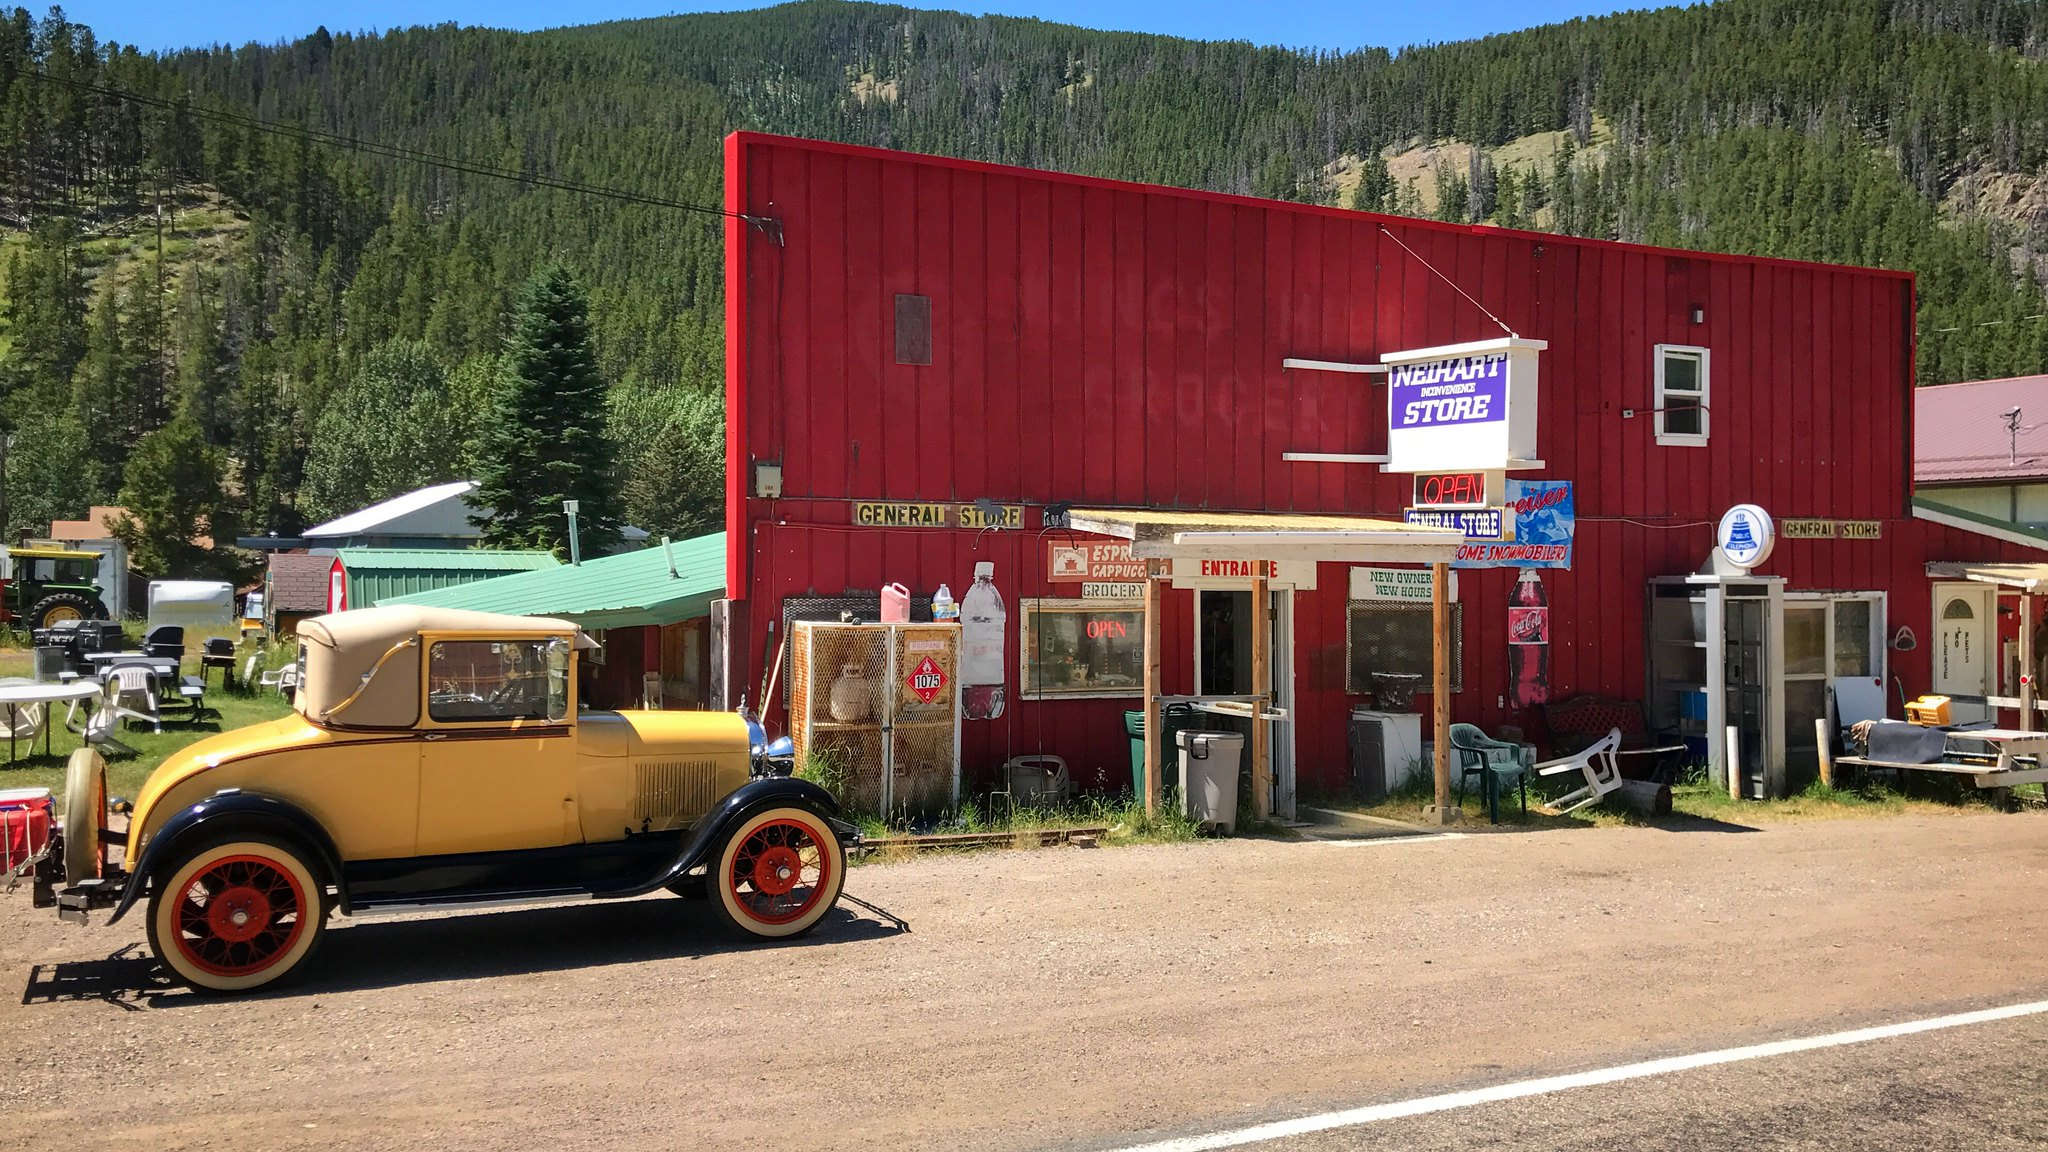 The Inconvenience Store has a good stock of groceries and supplies, located in Neihart, Montana - Cascade County on Highway 89.